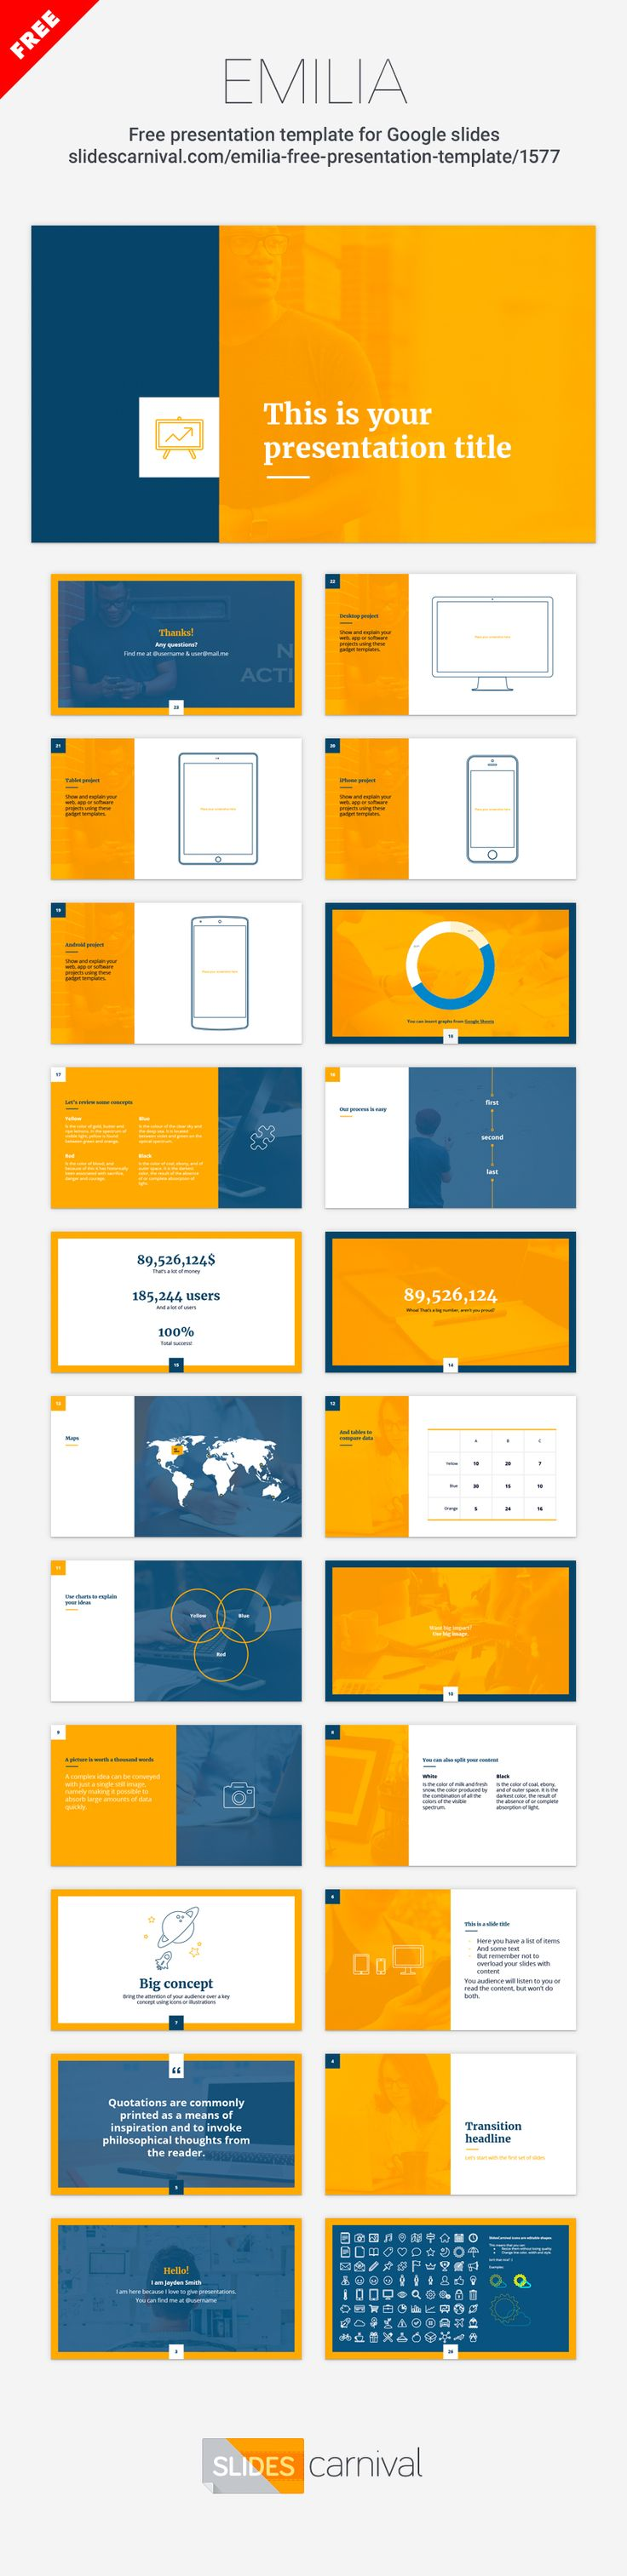 Best Free Presentation Templates Images On Pinterest - Fresh large check for presentation concept